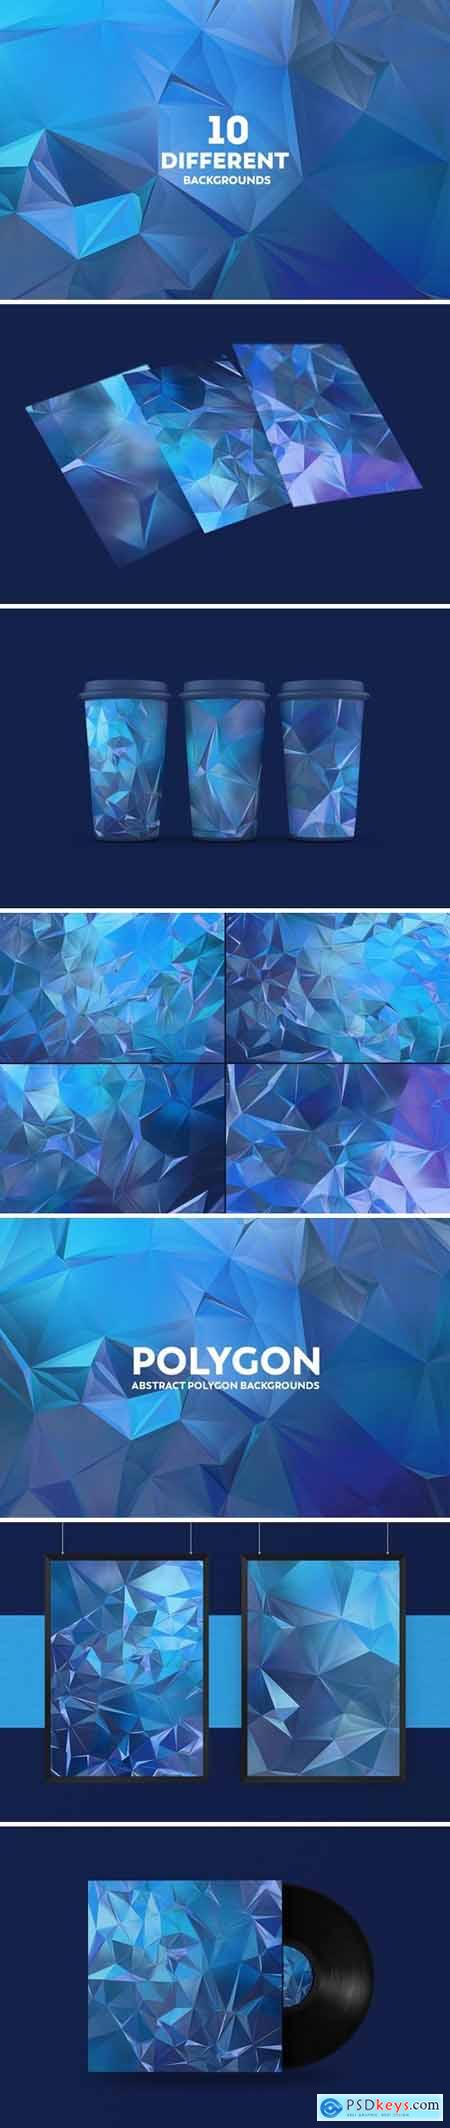 Abstract Polygon Backgrounds 82P3X58